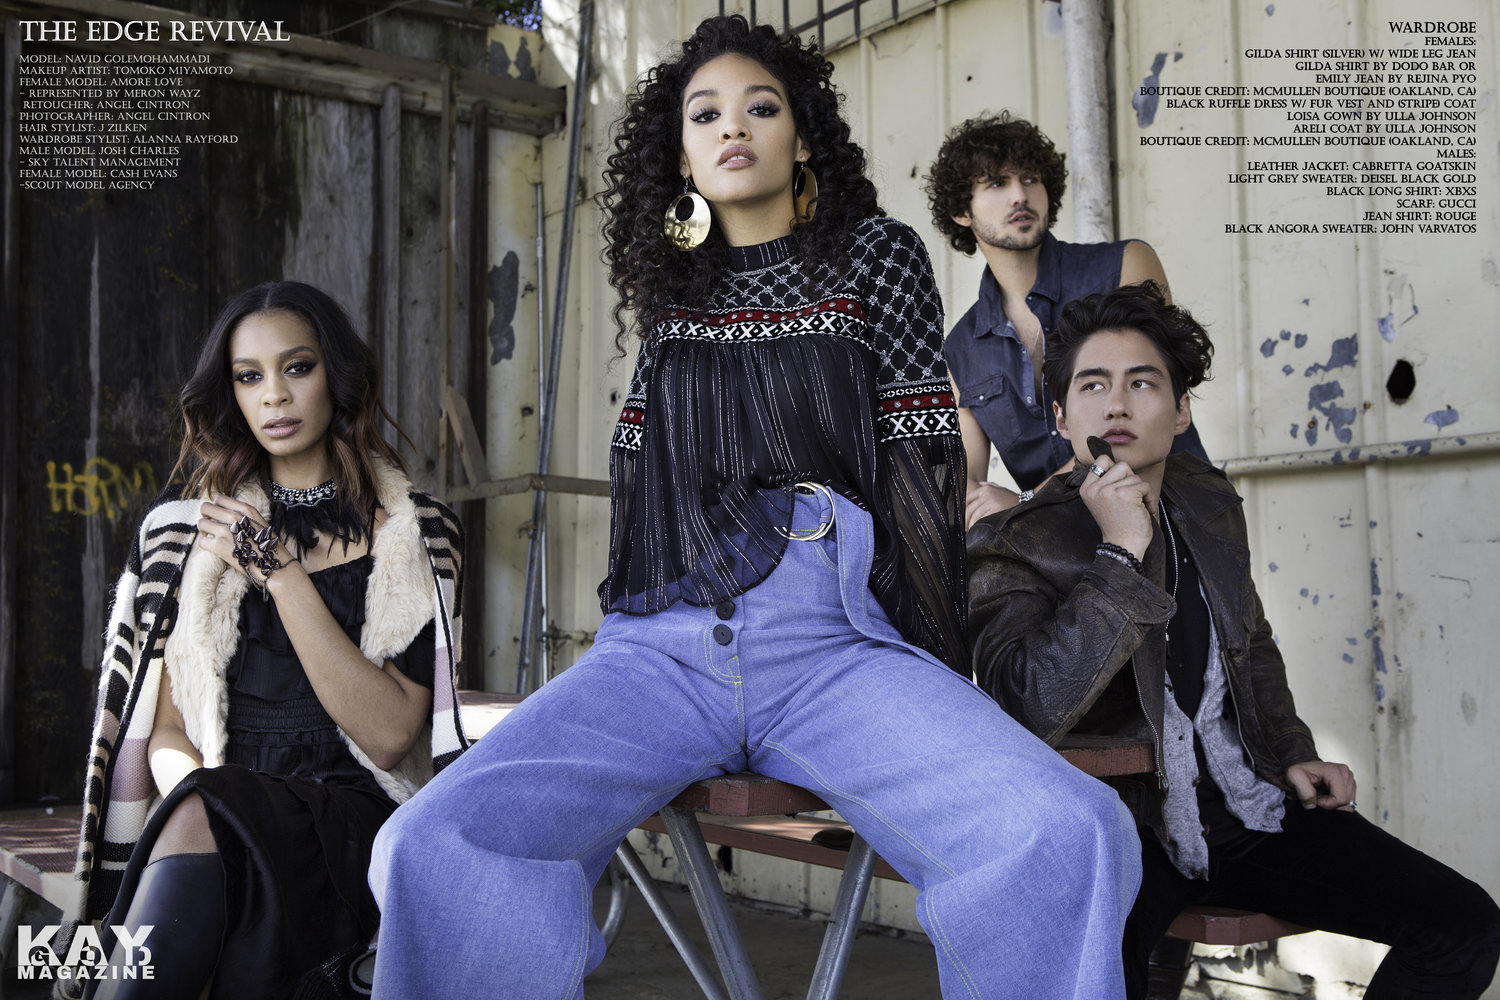 Angel Cintron captures a fantasy of edge in this exclusive Fall 18' fashion editorial. - CLICK TO VIEW